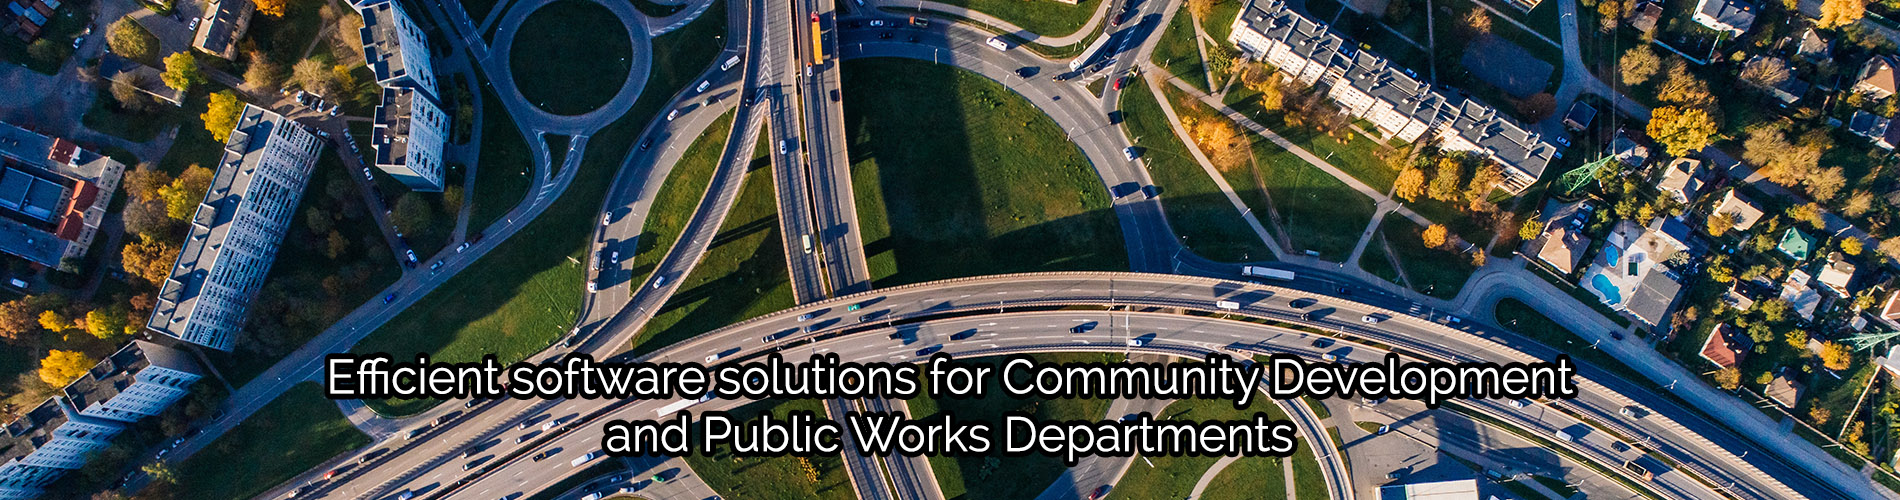 Efficient software solutions for community development and public works departments